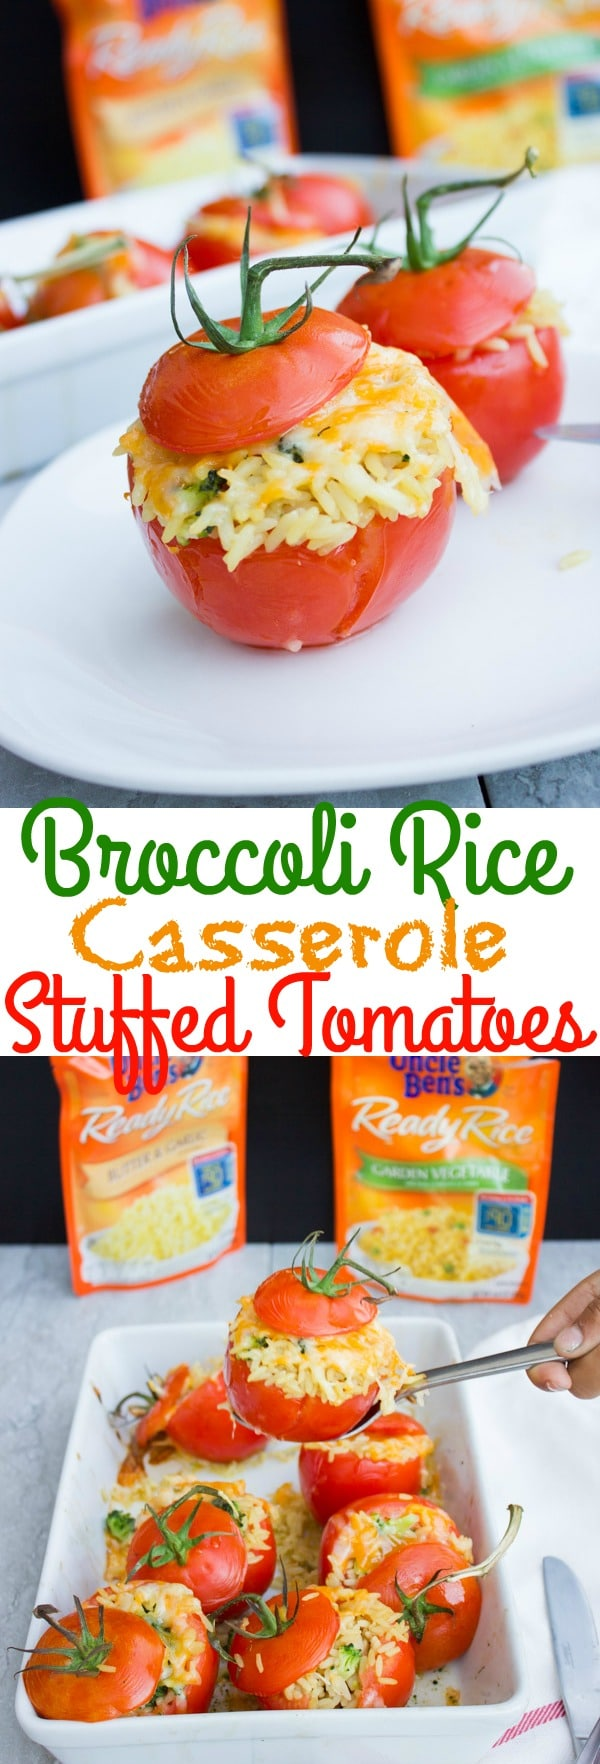 This Broccoli Rice Casserole Stuffed Tomatoes recipe makes for a quick, easy and light summer lunch dinner! With only 4 ingredients needed, the whole family can help to prepare this simple, healthy veggie dish! #appetizers, #stuffedtomatoes, #vegetarianrecipes, #kidsfriendly